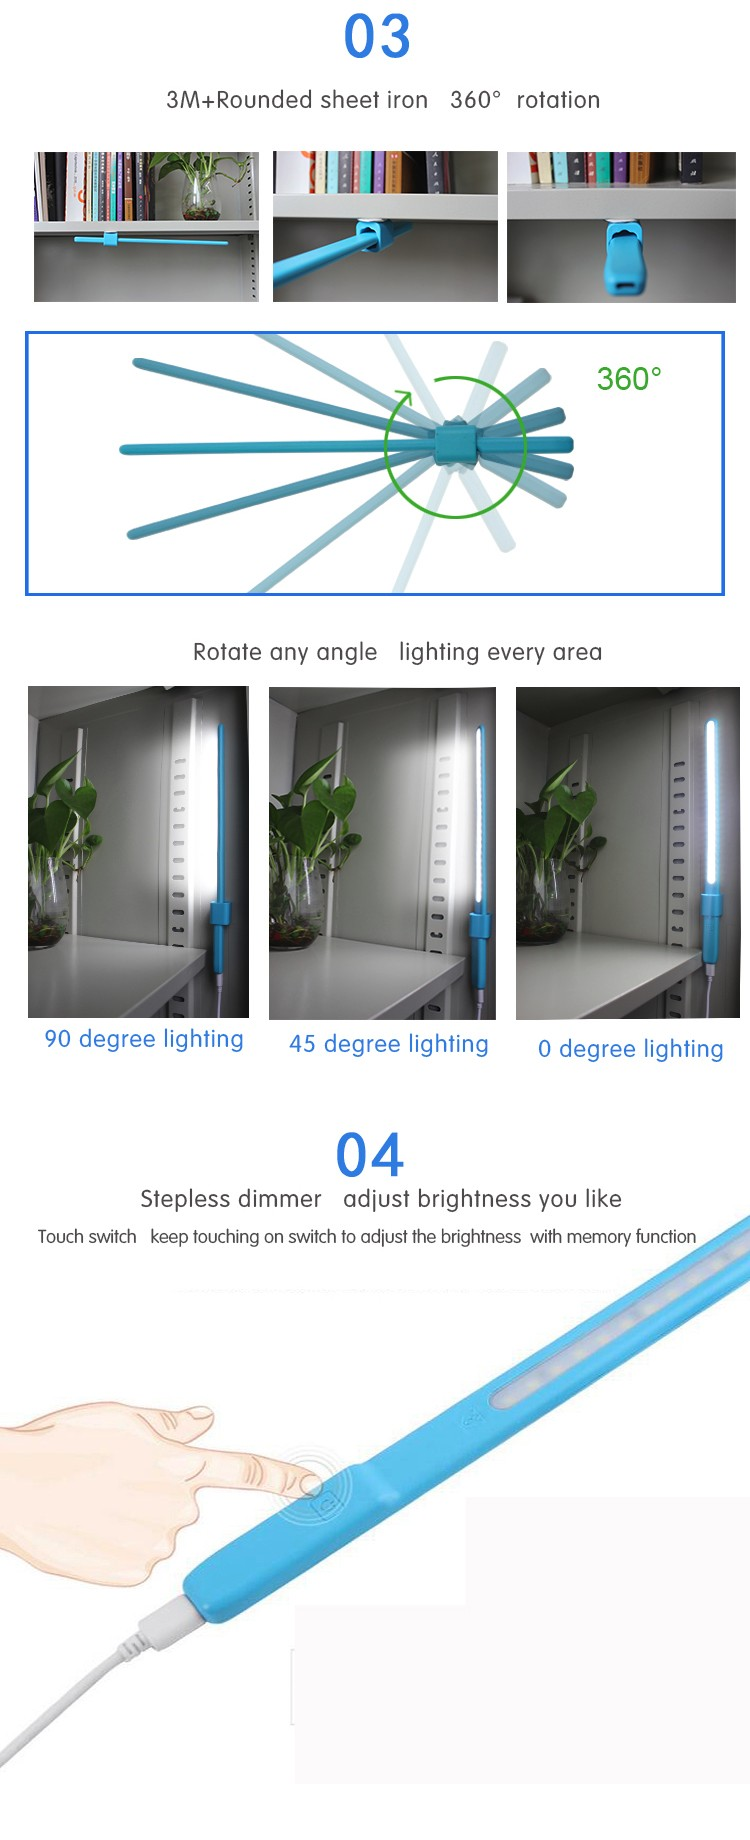 2016 NEW Electronic Gift Touch Sensitive Stepless Dimmable USB LED Light For Computer Laptop